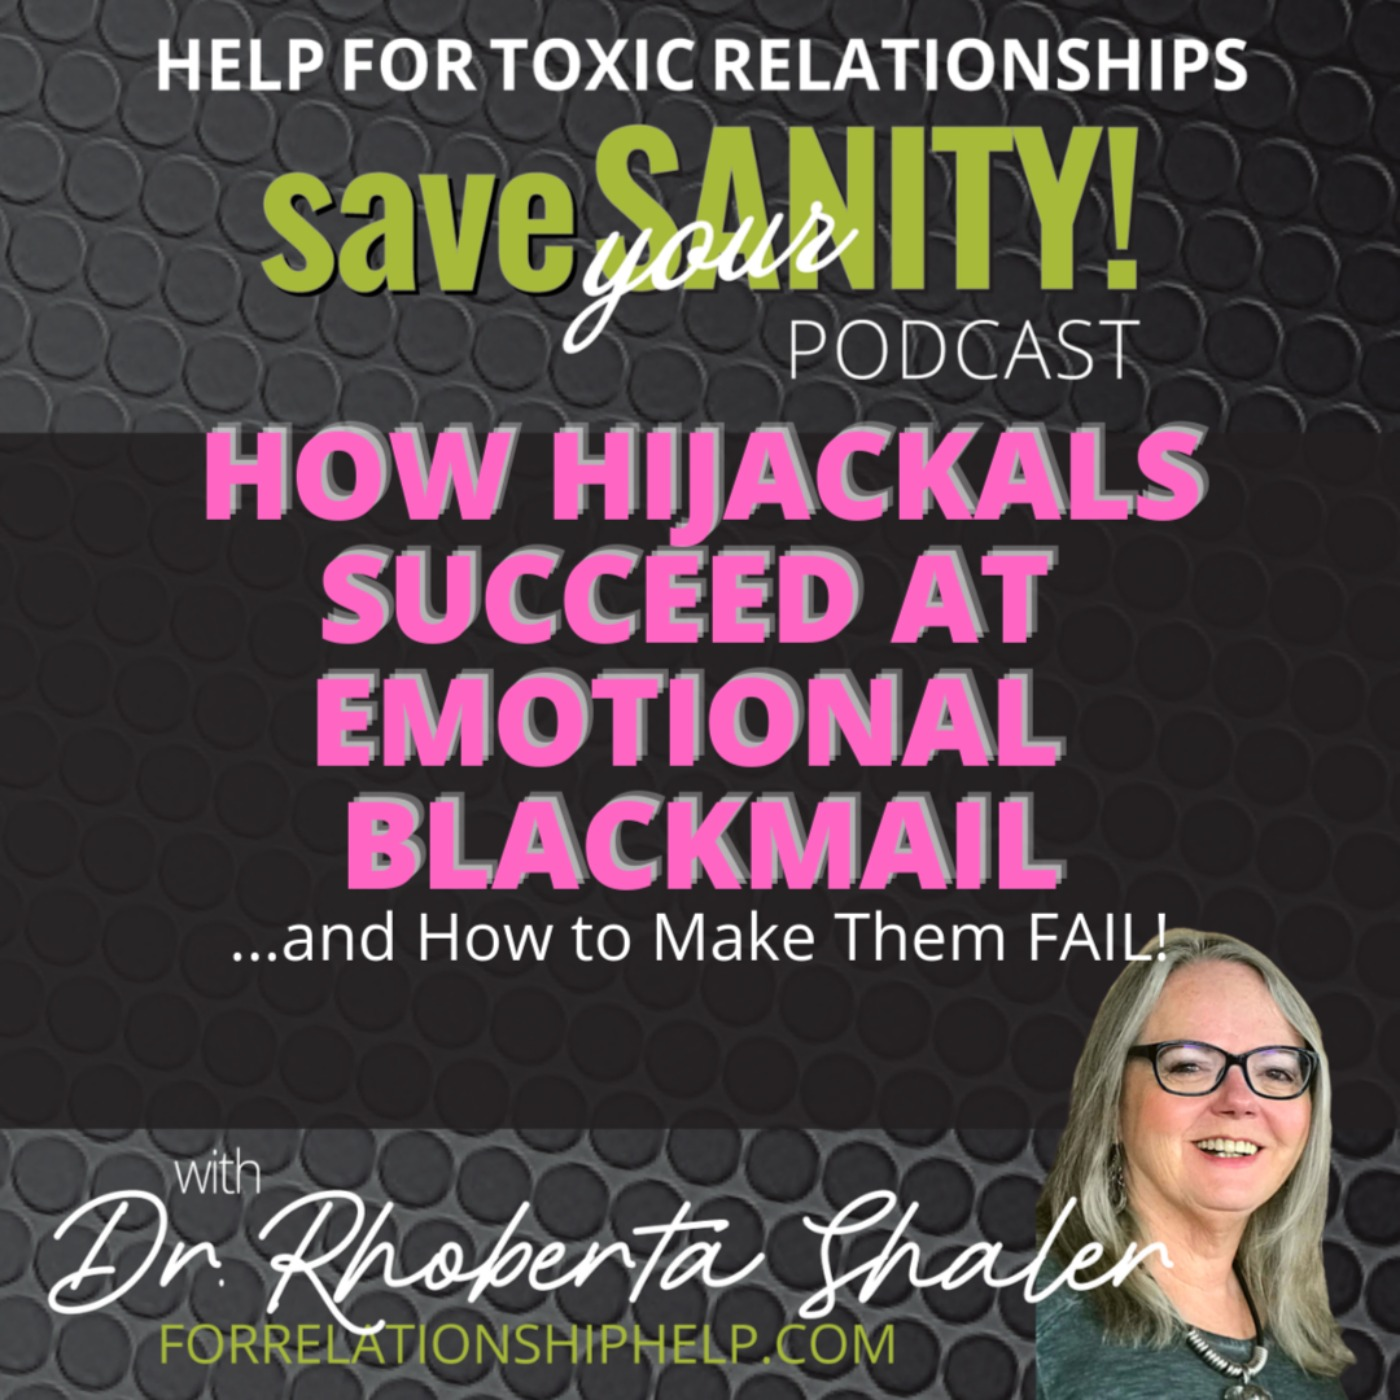 How Hijackals Succeed at Emotional Blackmail